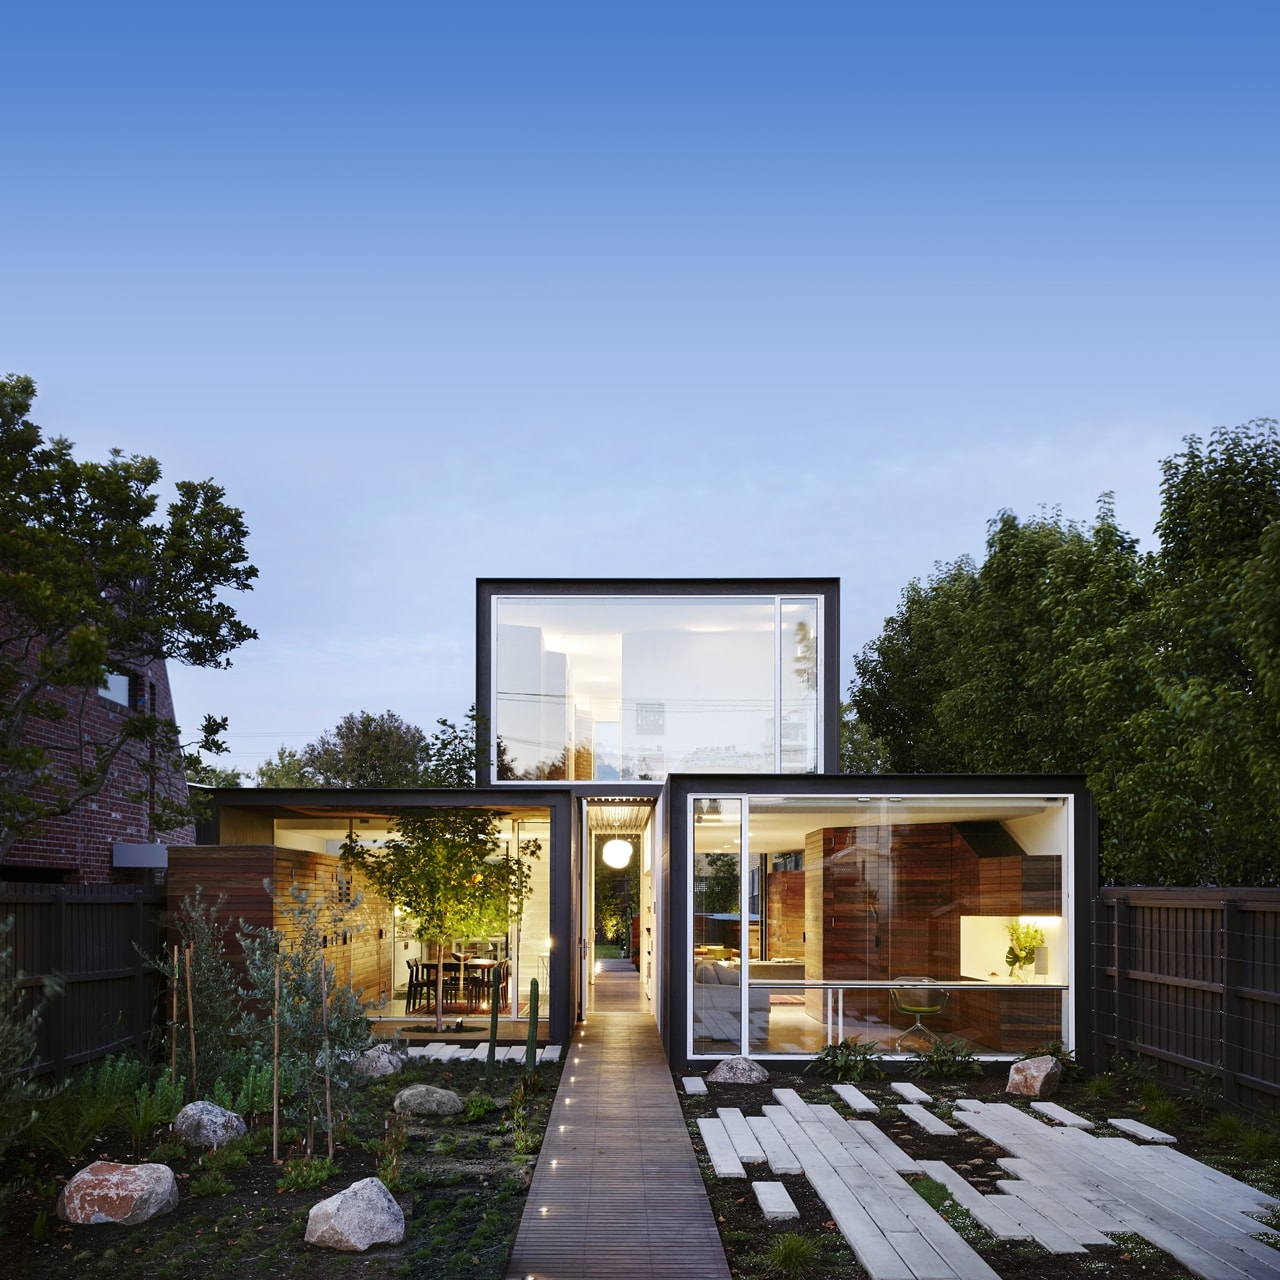 open house design: contemporary home connected to the outdoors